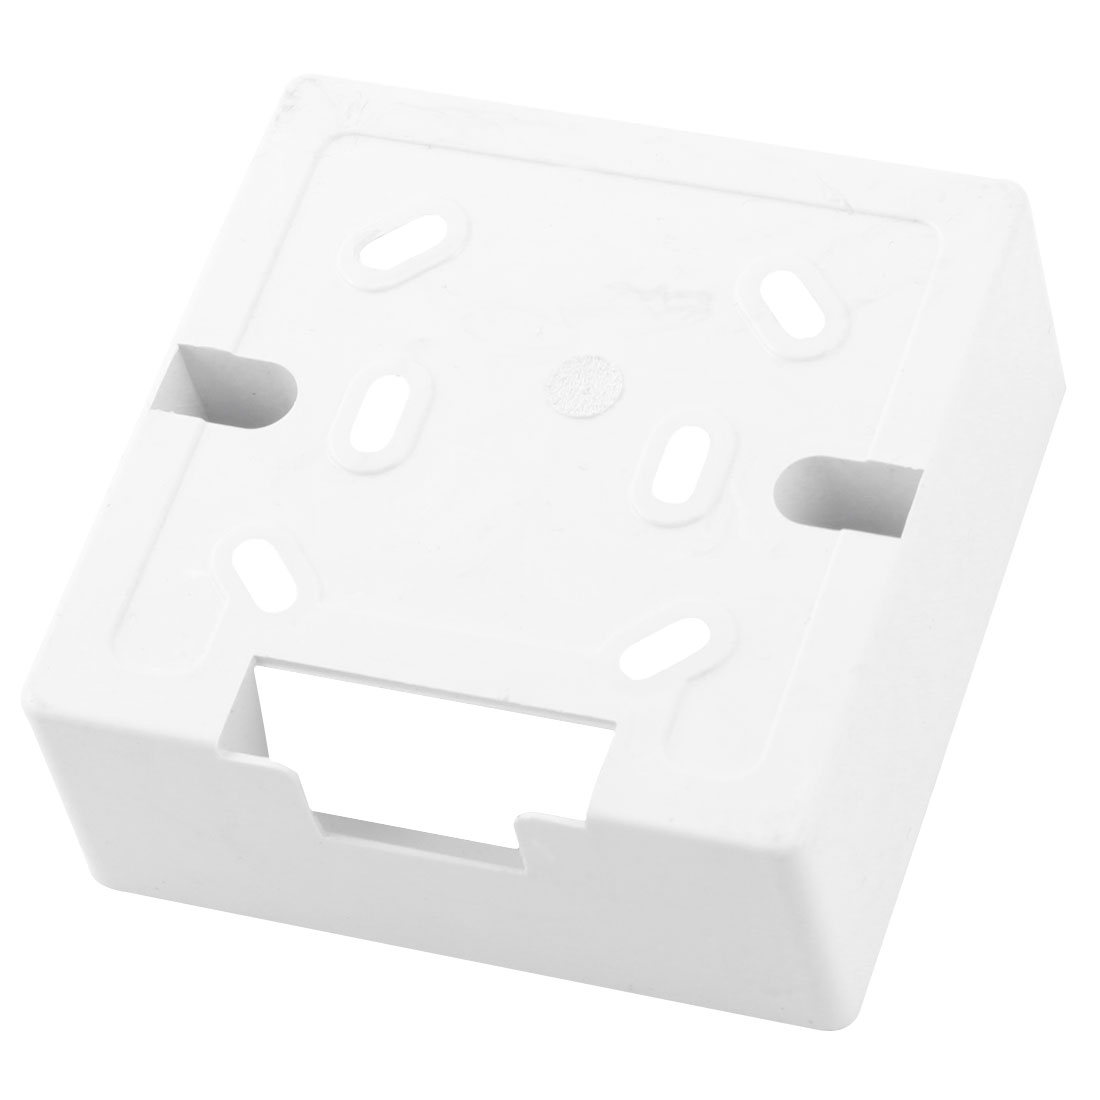 86mmx86mmx34mm Square White Plastic Mount Back Box for Wall Socket